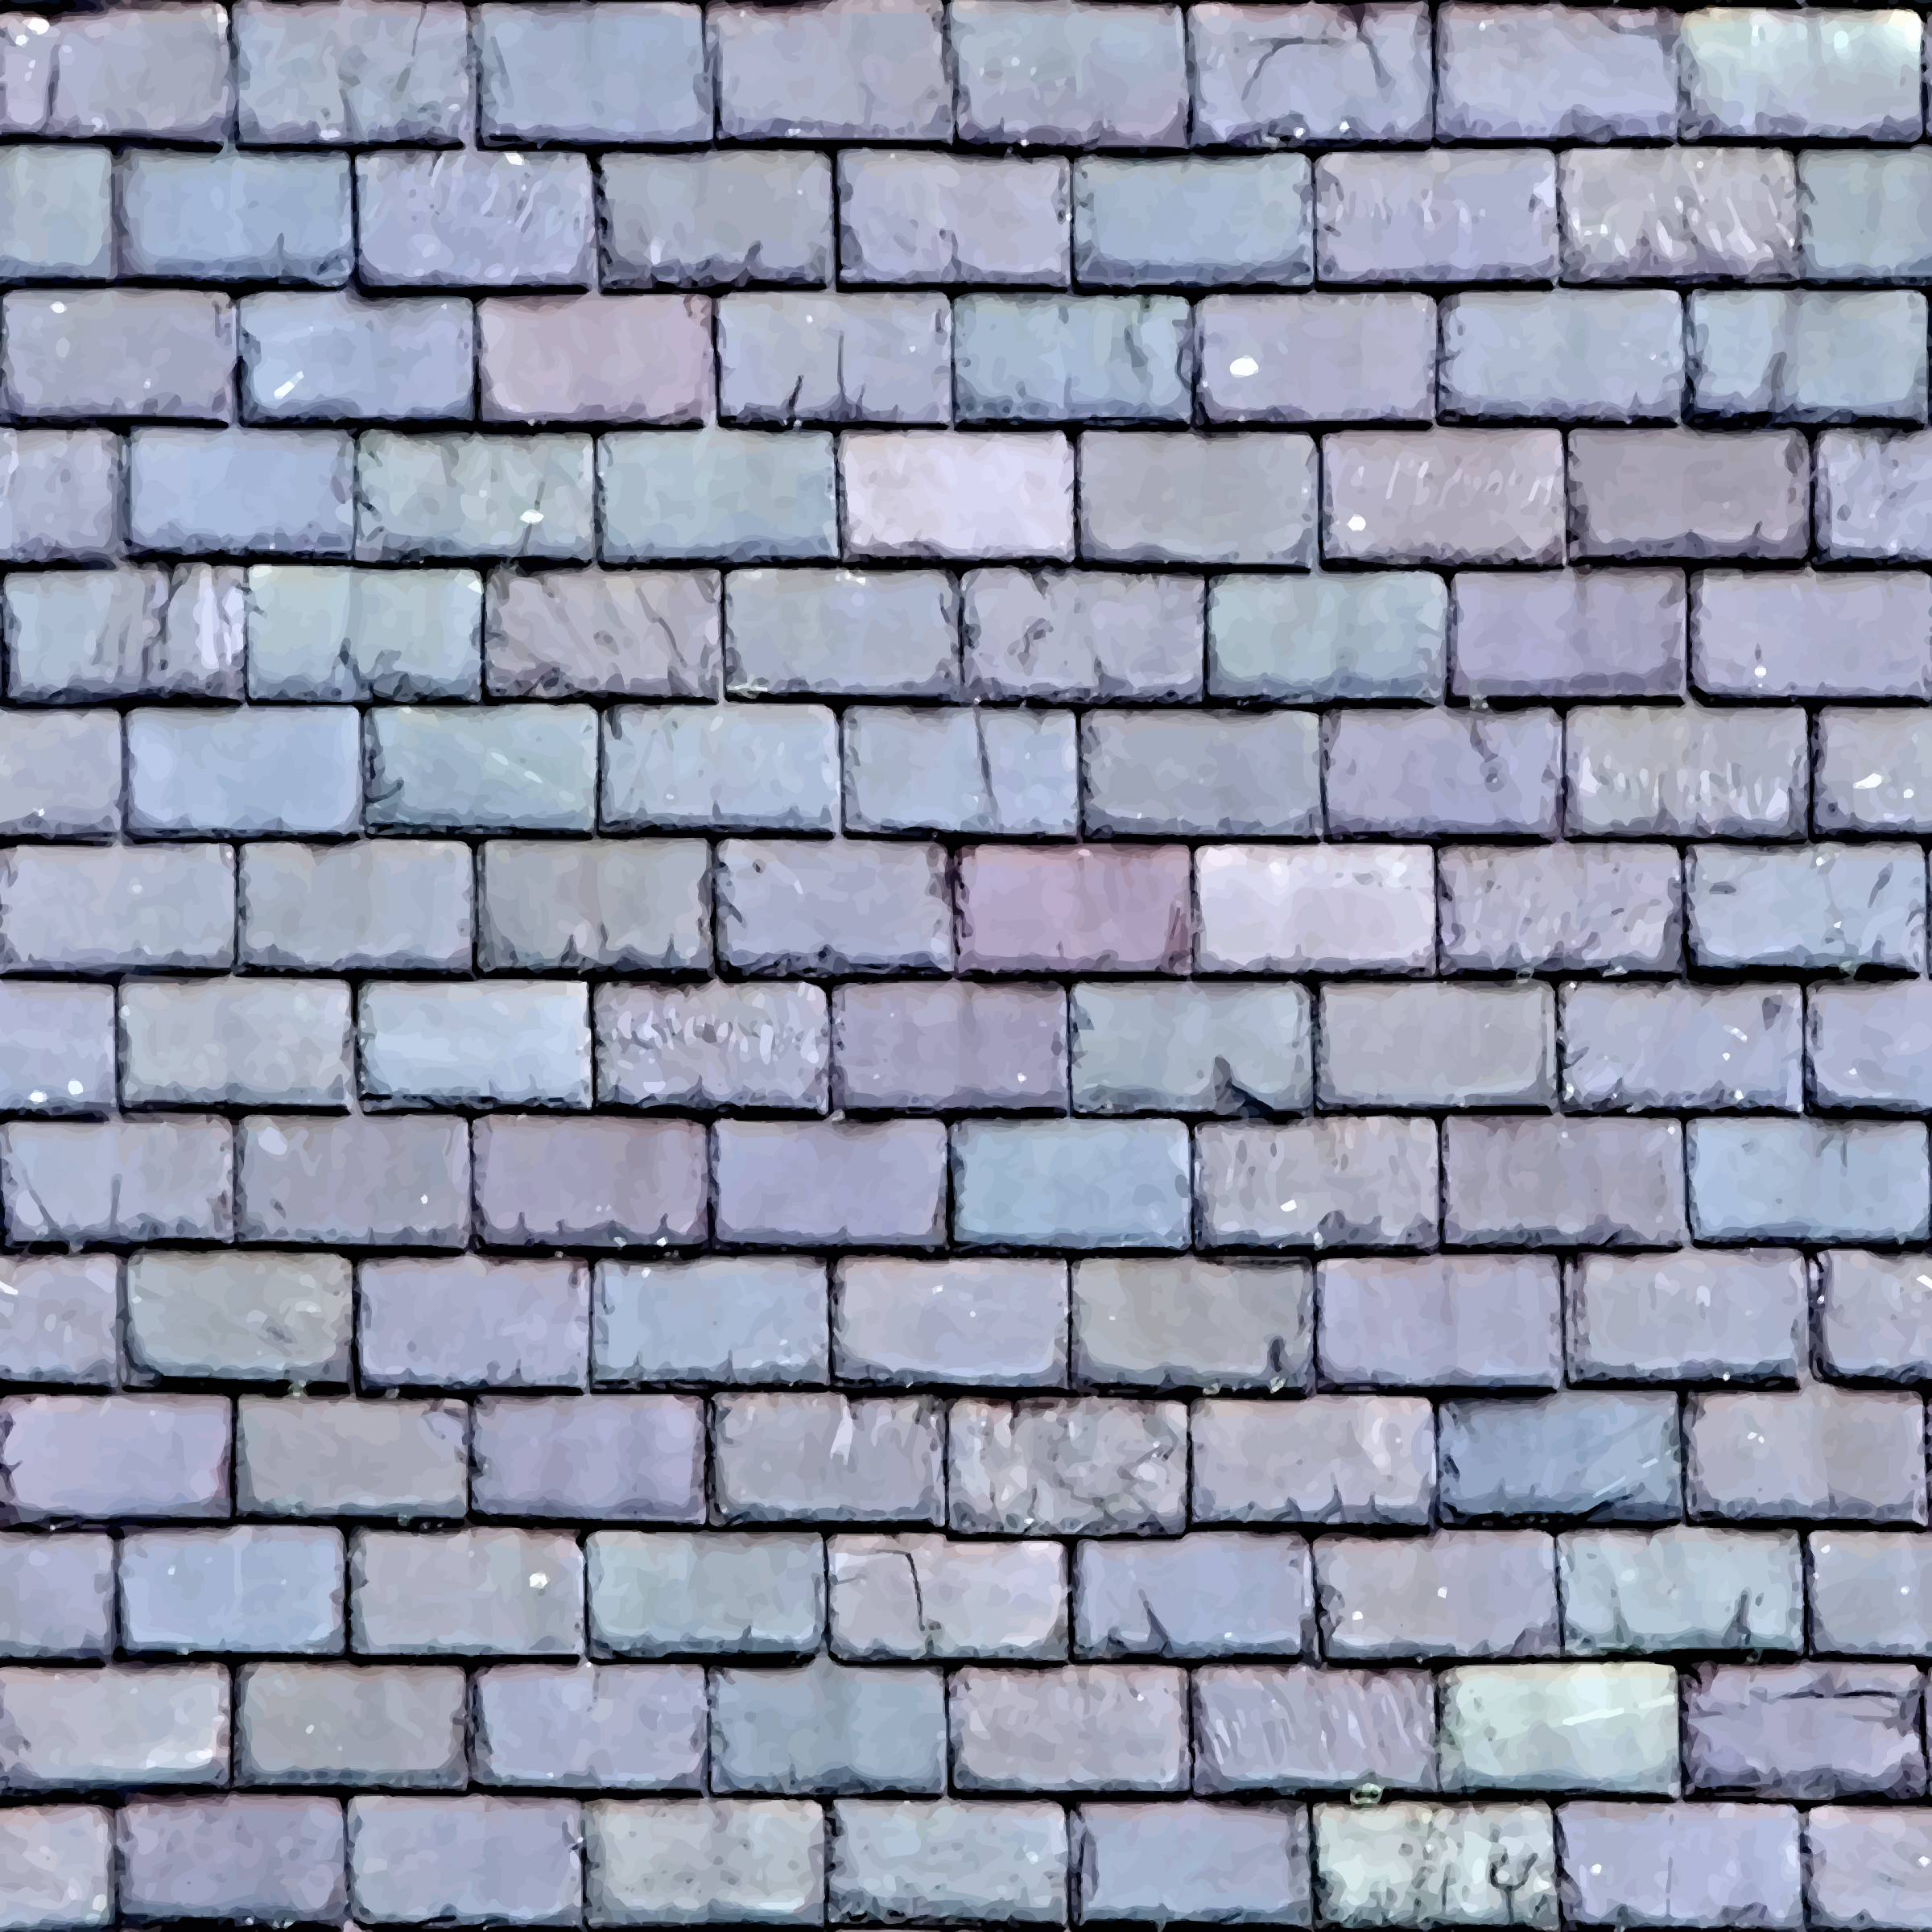 Roof slates 2 by Firkin